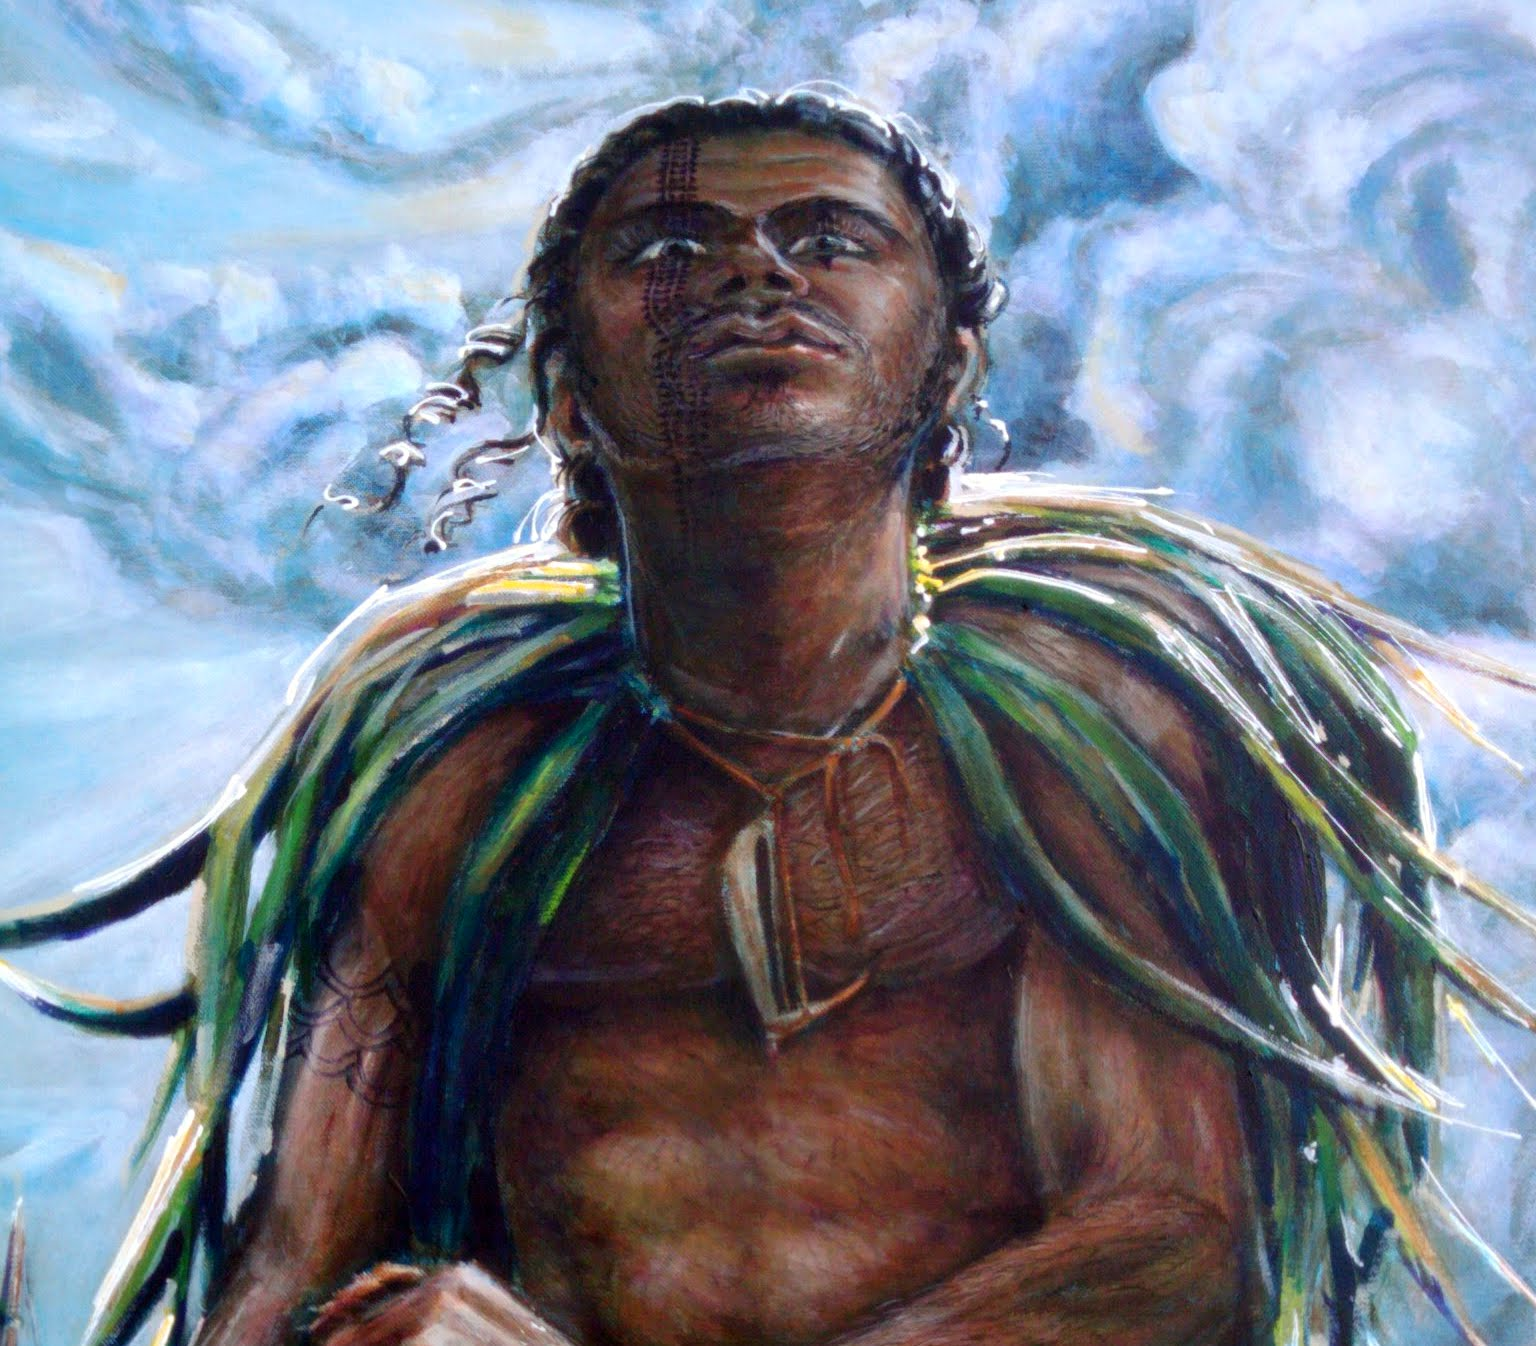 the maori legends of maui Maori legends state that, in the beginning, was te kore or the nothing which  existed  the best of them, notably those about maui, are true myths, disturbingly .